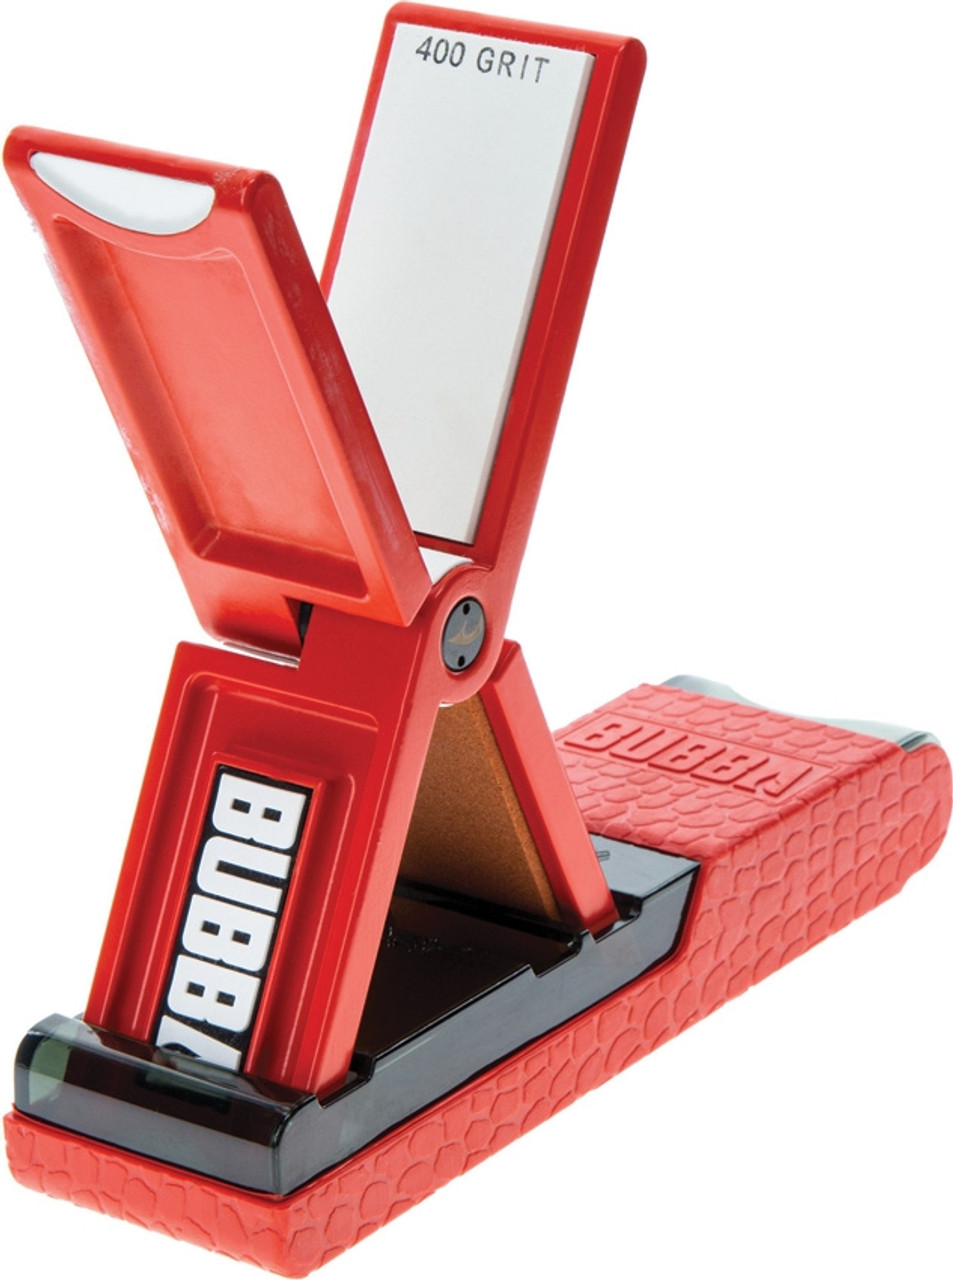 Bubba Blade Altus Portable Knife Sharpener, 180 and 400 Grit Stone